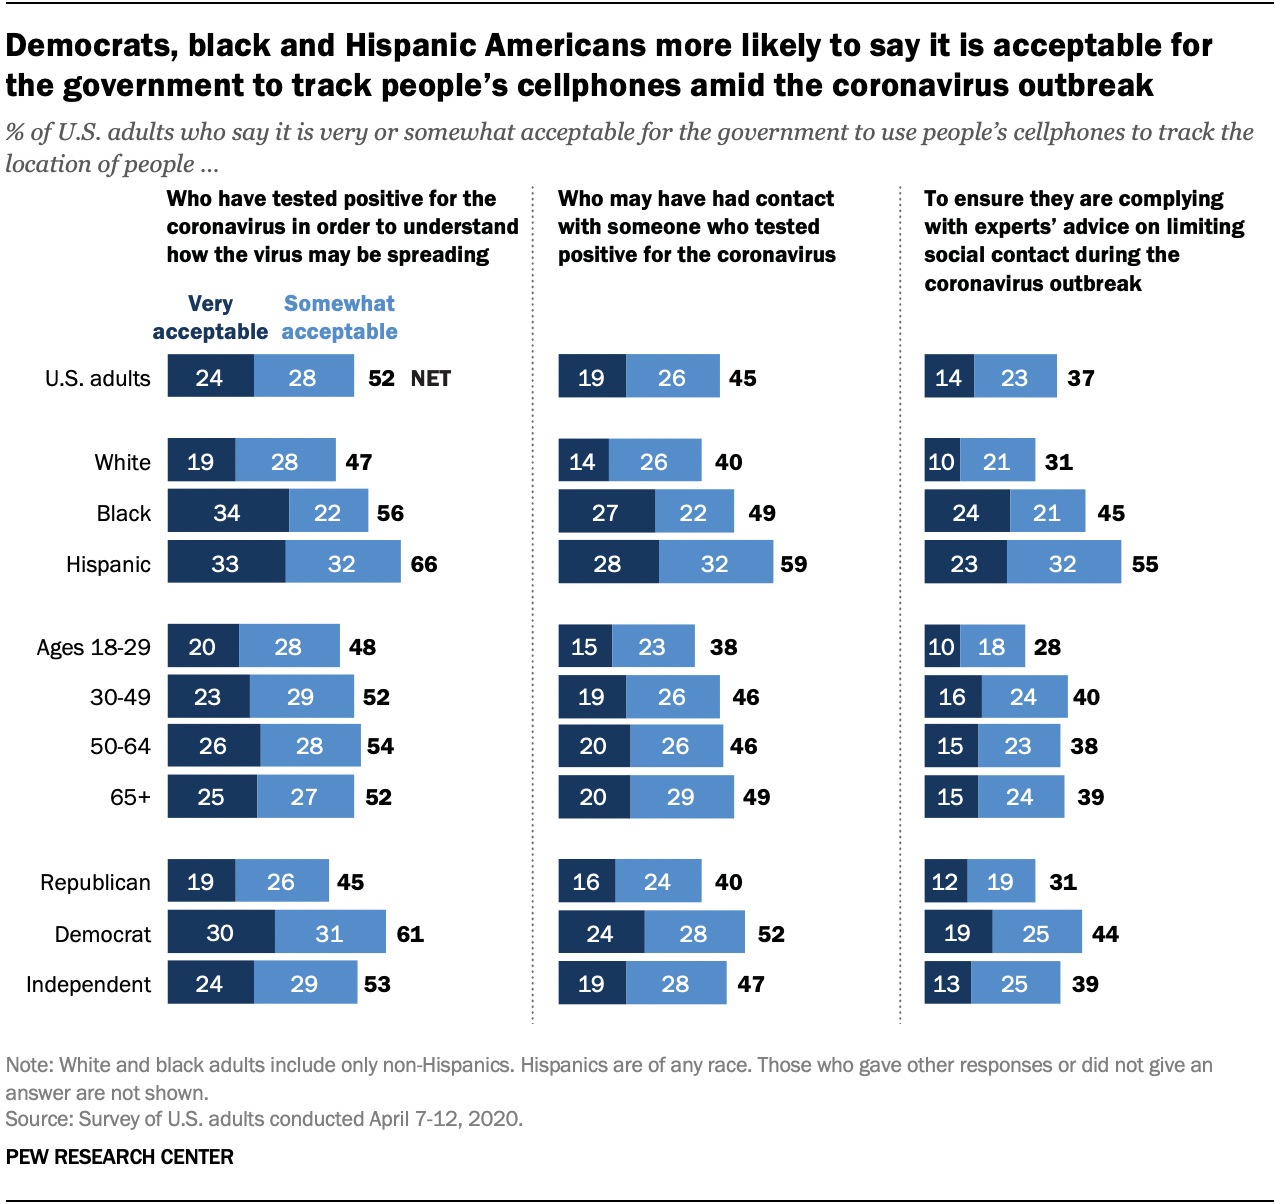 Democrats, black and Hispanic Americans more likely to say it is acceptable for the government to track people's cellphones amid the coronavirus outbreak